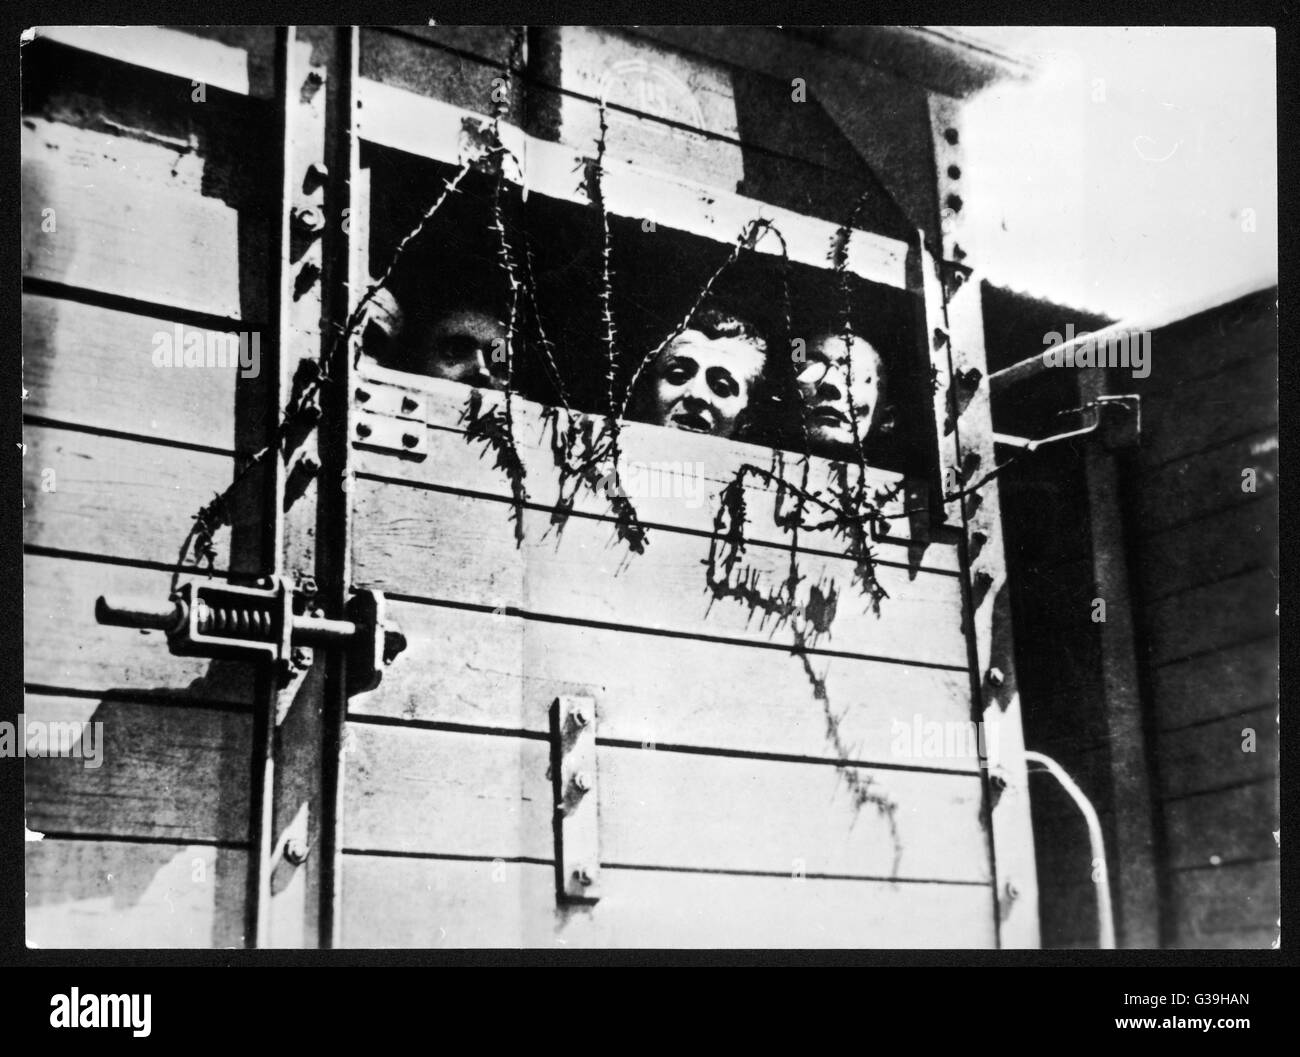 Concentration Camps Black and White Stock Photos & Images - Alamy on the outline of the concentration camps, graph of the concentration camps, map of concentration ca ps, map of world war ii concentration camp germany, map of german concentration camps, printable map of germany with concentration camps, map of germany with concentration camps ww2, map of nazi concentration camp locations, map of concentration camps during ww2, gas chambers in concentration camps, us map of concentration camps, map of concentration camps during holocaust, introduction of the concentration camps, map concentration camps in germany, map of concentration camps in europe,